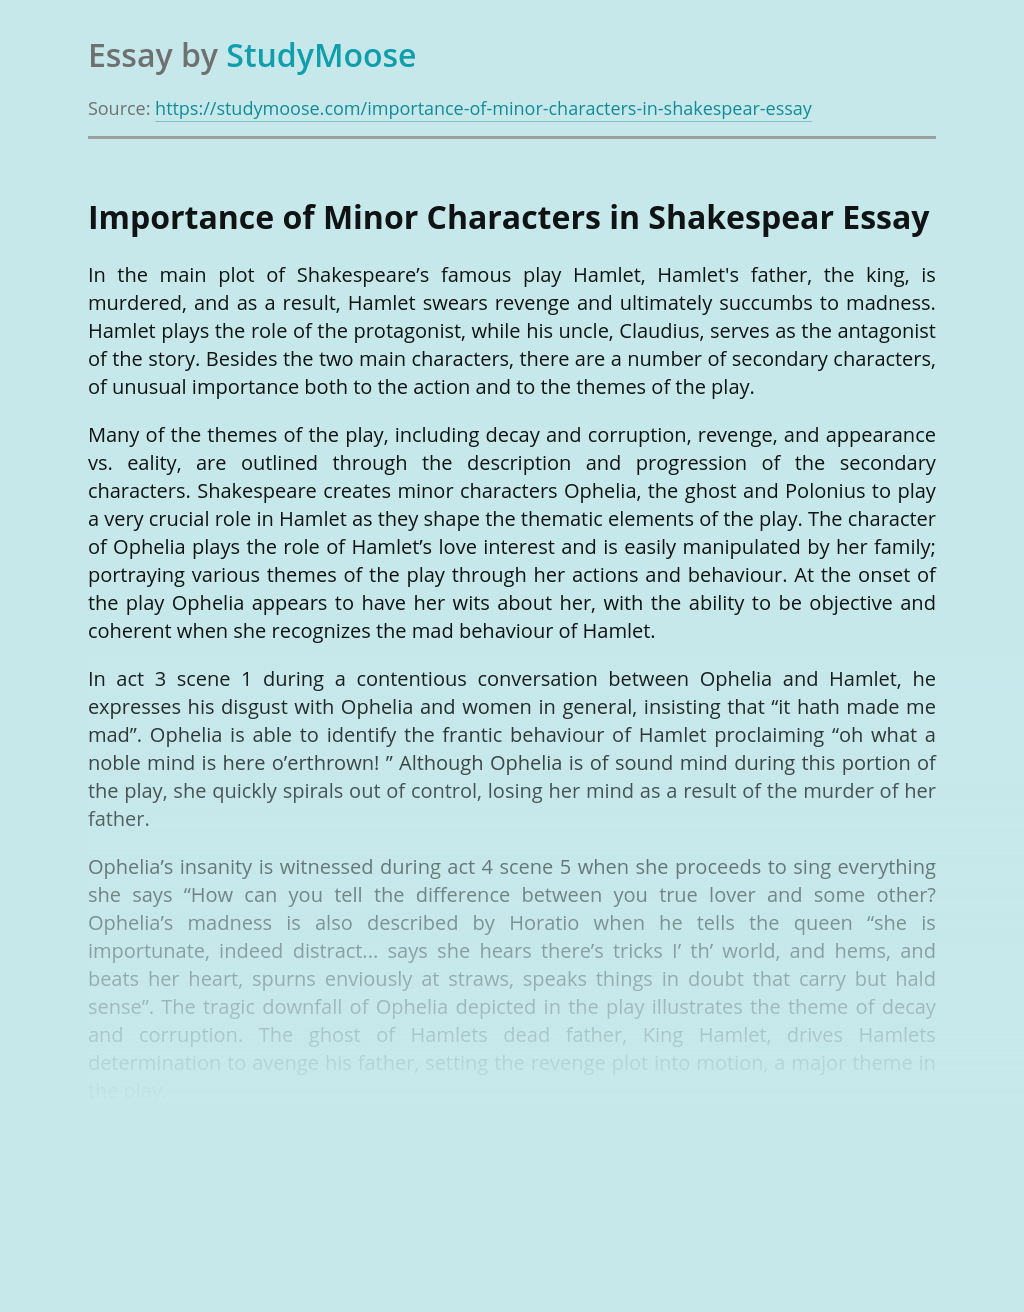 Importance of Minor Characters in Shakespear